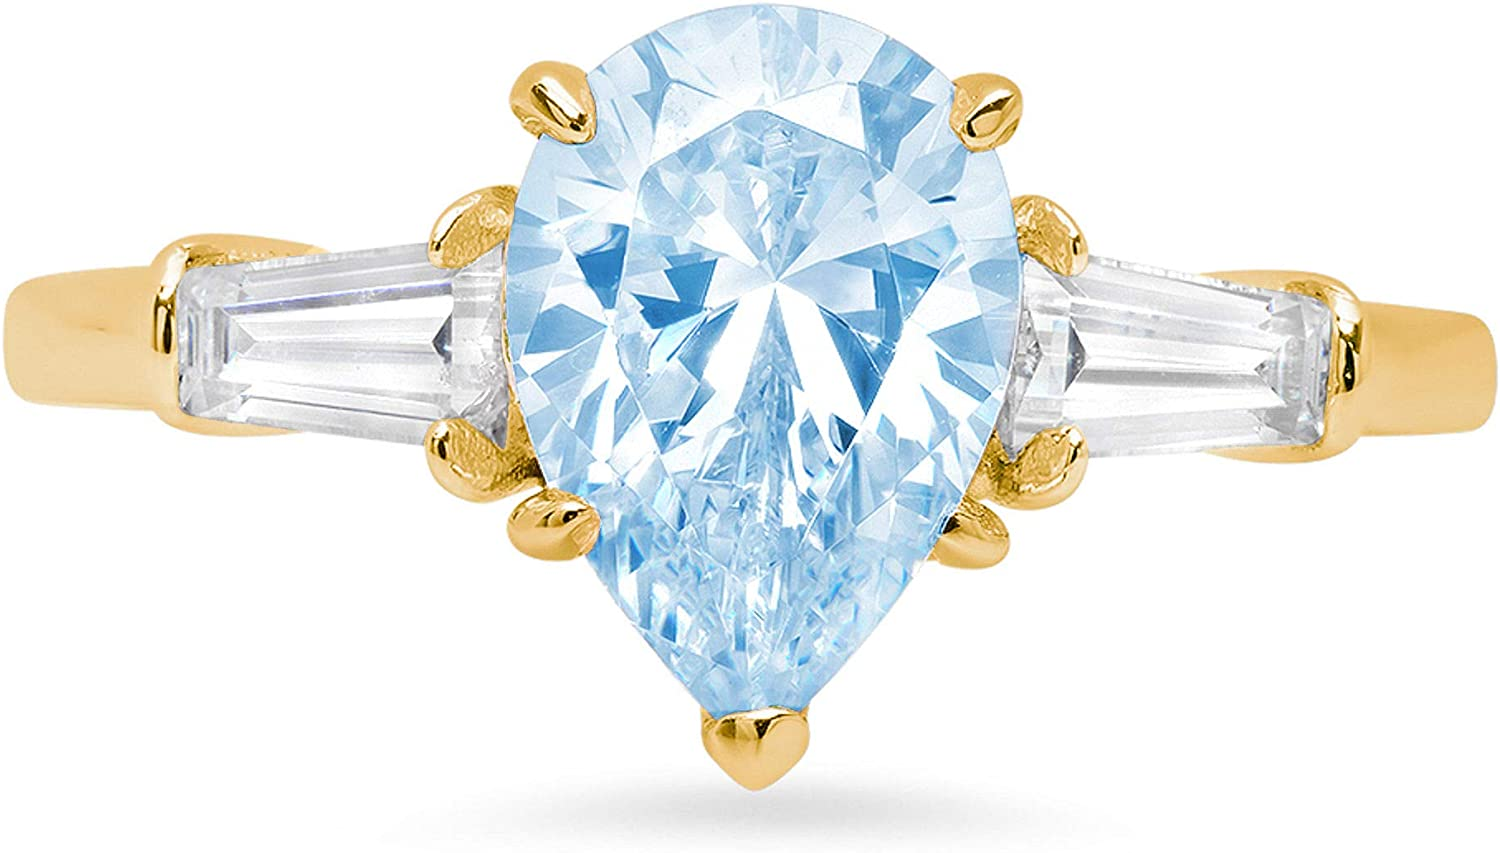 2.47ct Pear Baguette cut 3 stone Solitaire with Accent Natural Sky Blue Topaz Gem Stone VVS1 Designer Modern Statement Ring Solid 14k Yellow Gold Clara Pucci